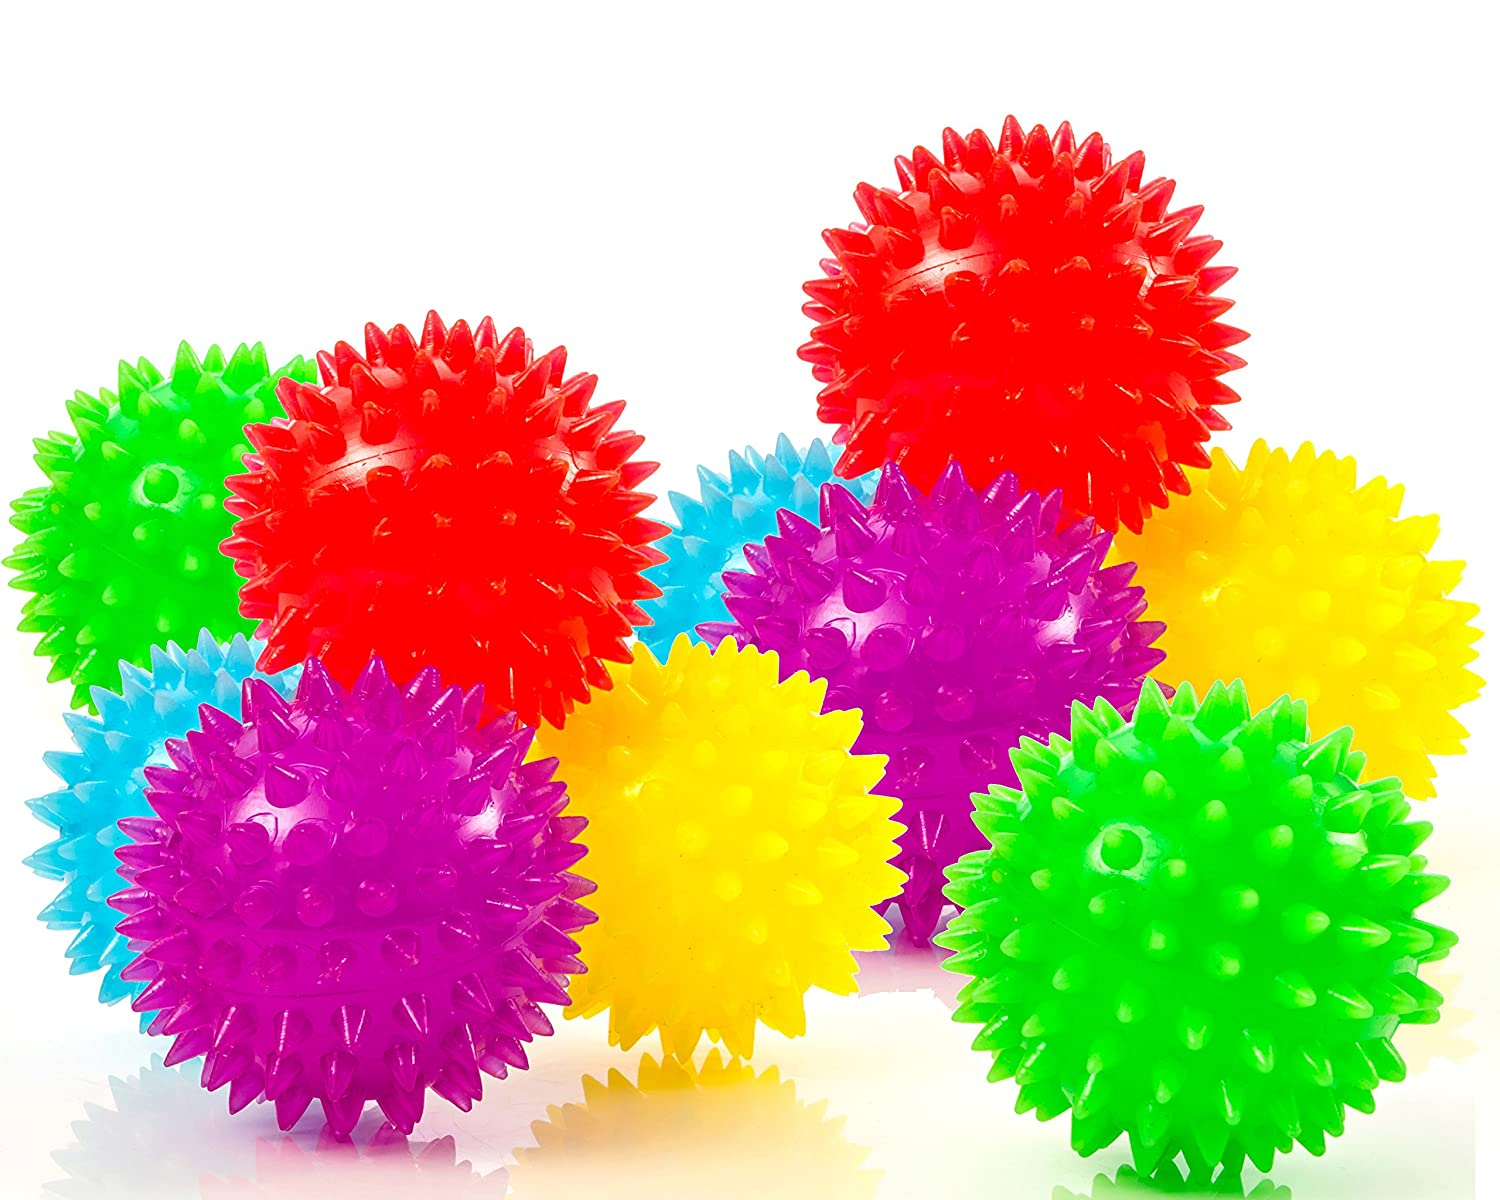 10-Pack of Spiky Sensory Balls - Squeezy and Bouncy Fidget Toys / Sensory Toys - BPA/Phthalate/Latex-Free Impresa Products BHBUSAZIN025491